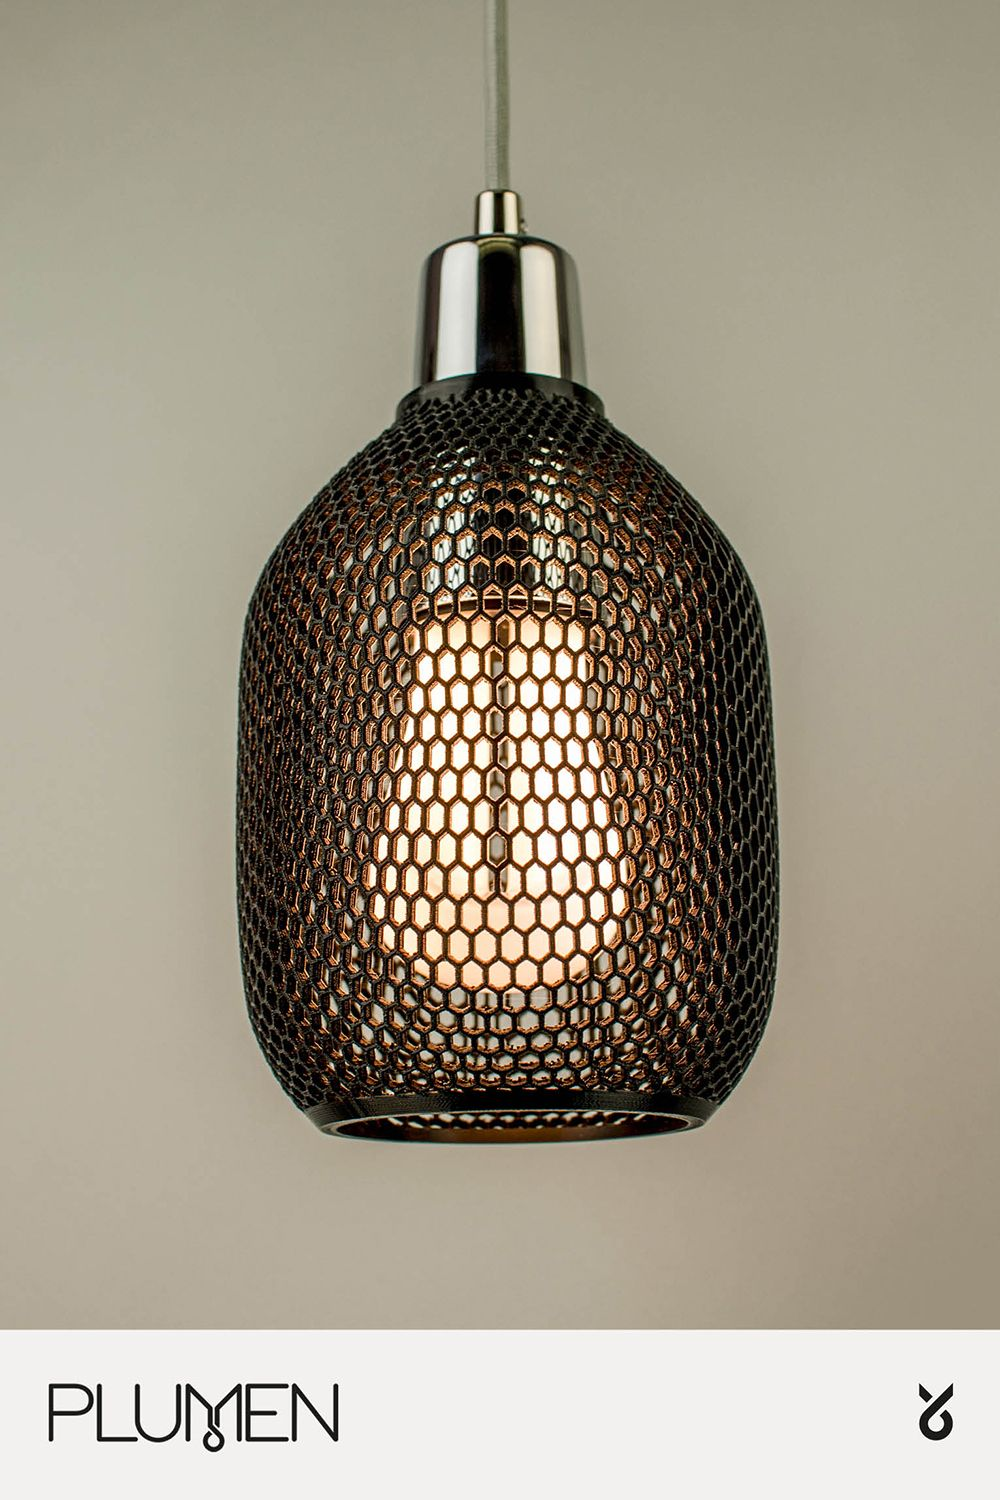 Hive A Recycled 3d Printed Light Shade Light Shades Cool